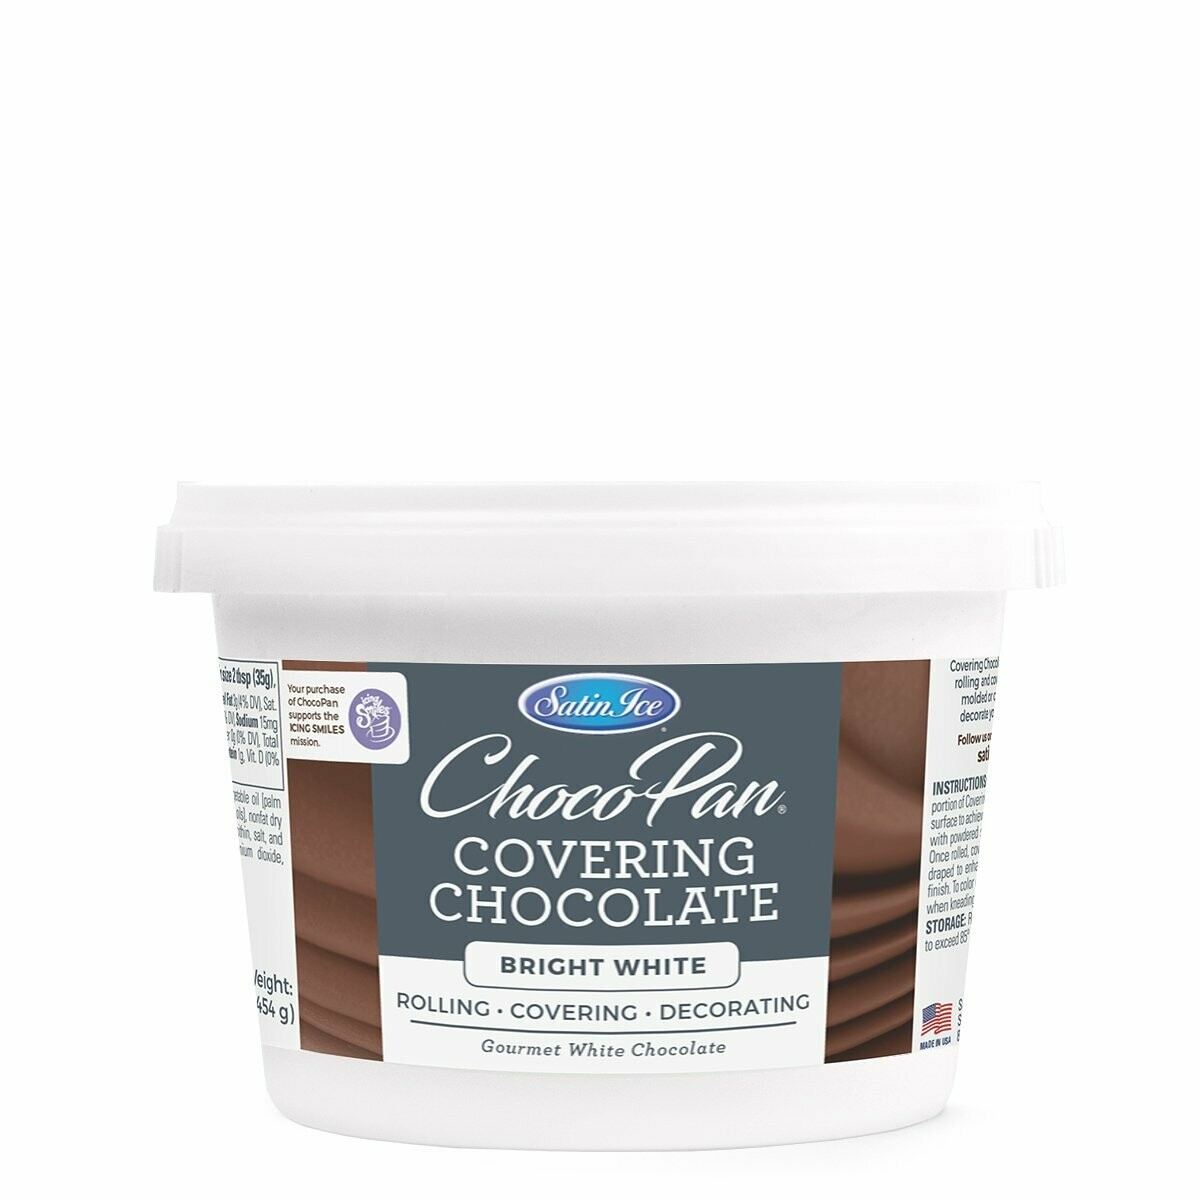 ChocoPan Covering Chocolate by Satin Ice (Multiple Colors)